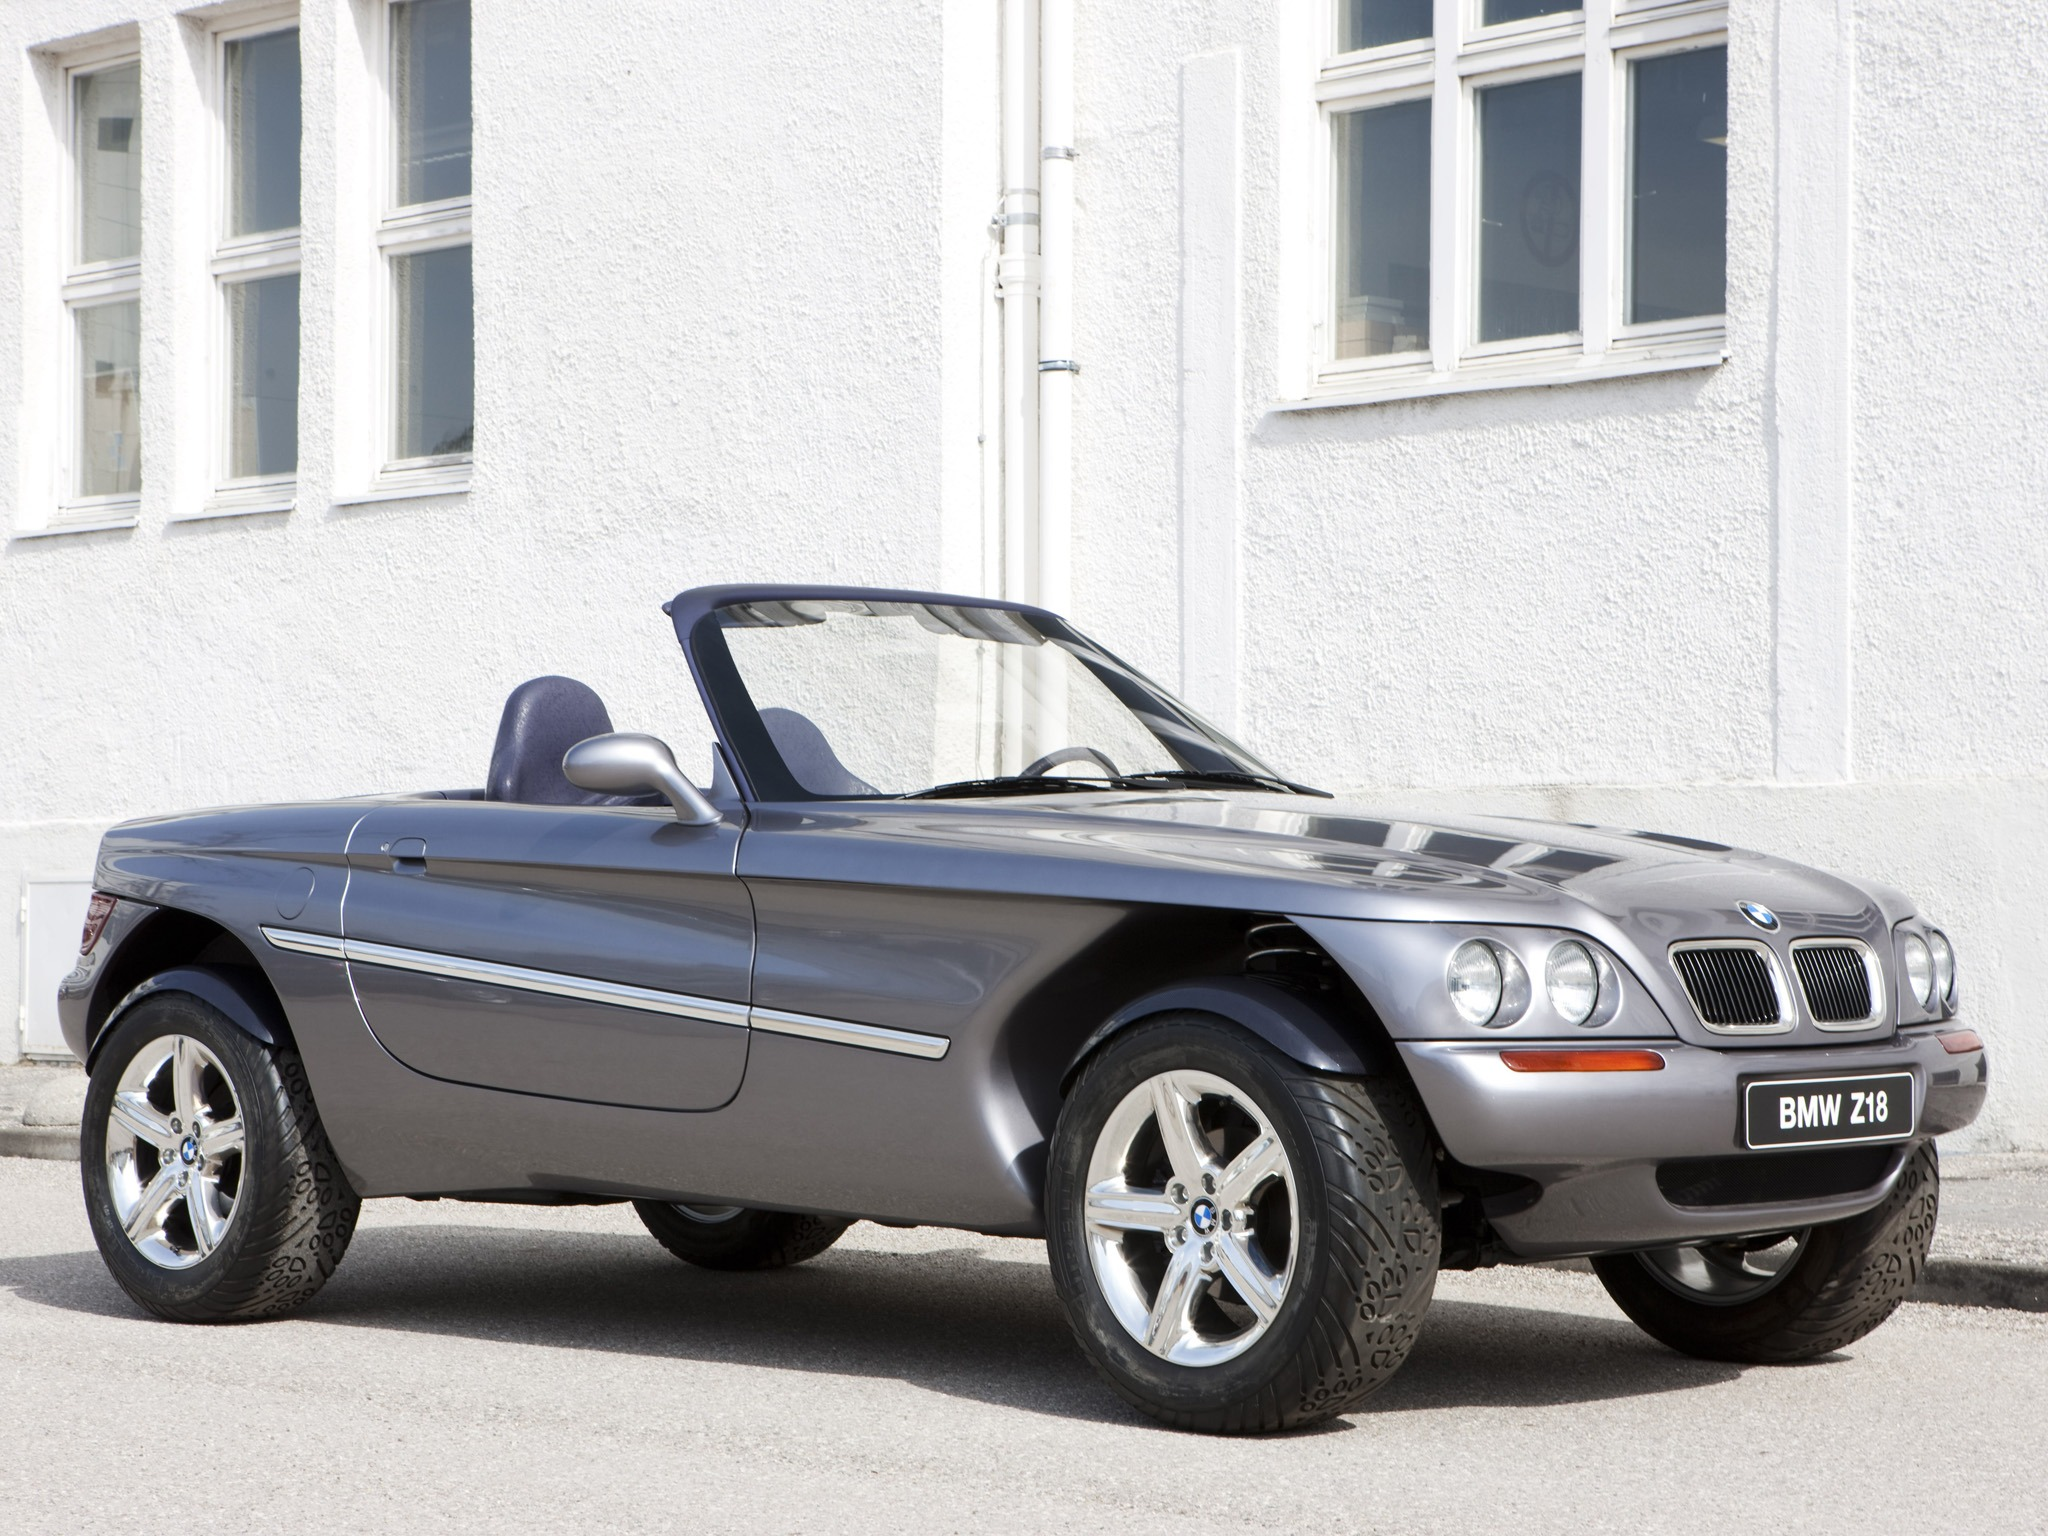 BMW Z18 (1995) – Old Concept Cars